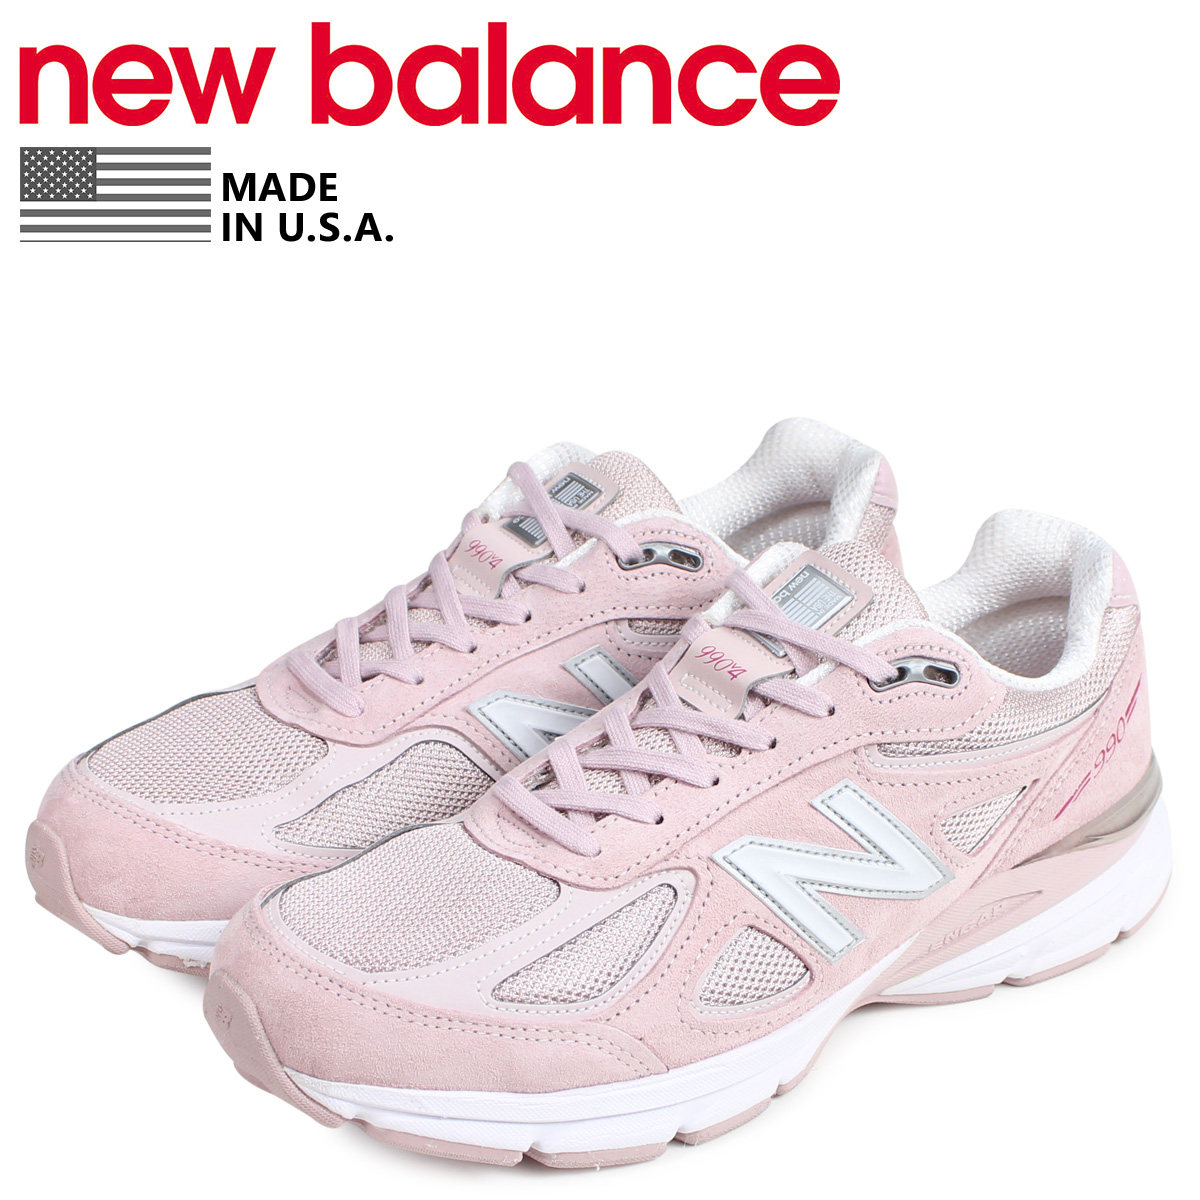 the best attitude c9e40 36f6e new balance New Balance 990 sneakers men MADE IN USA D Wise pink M990KMN4